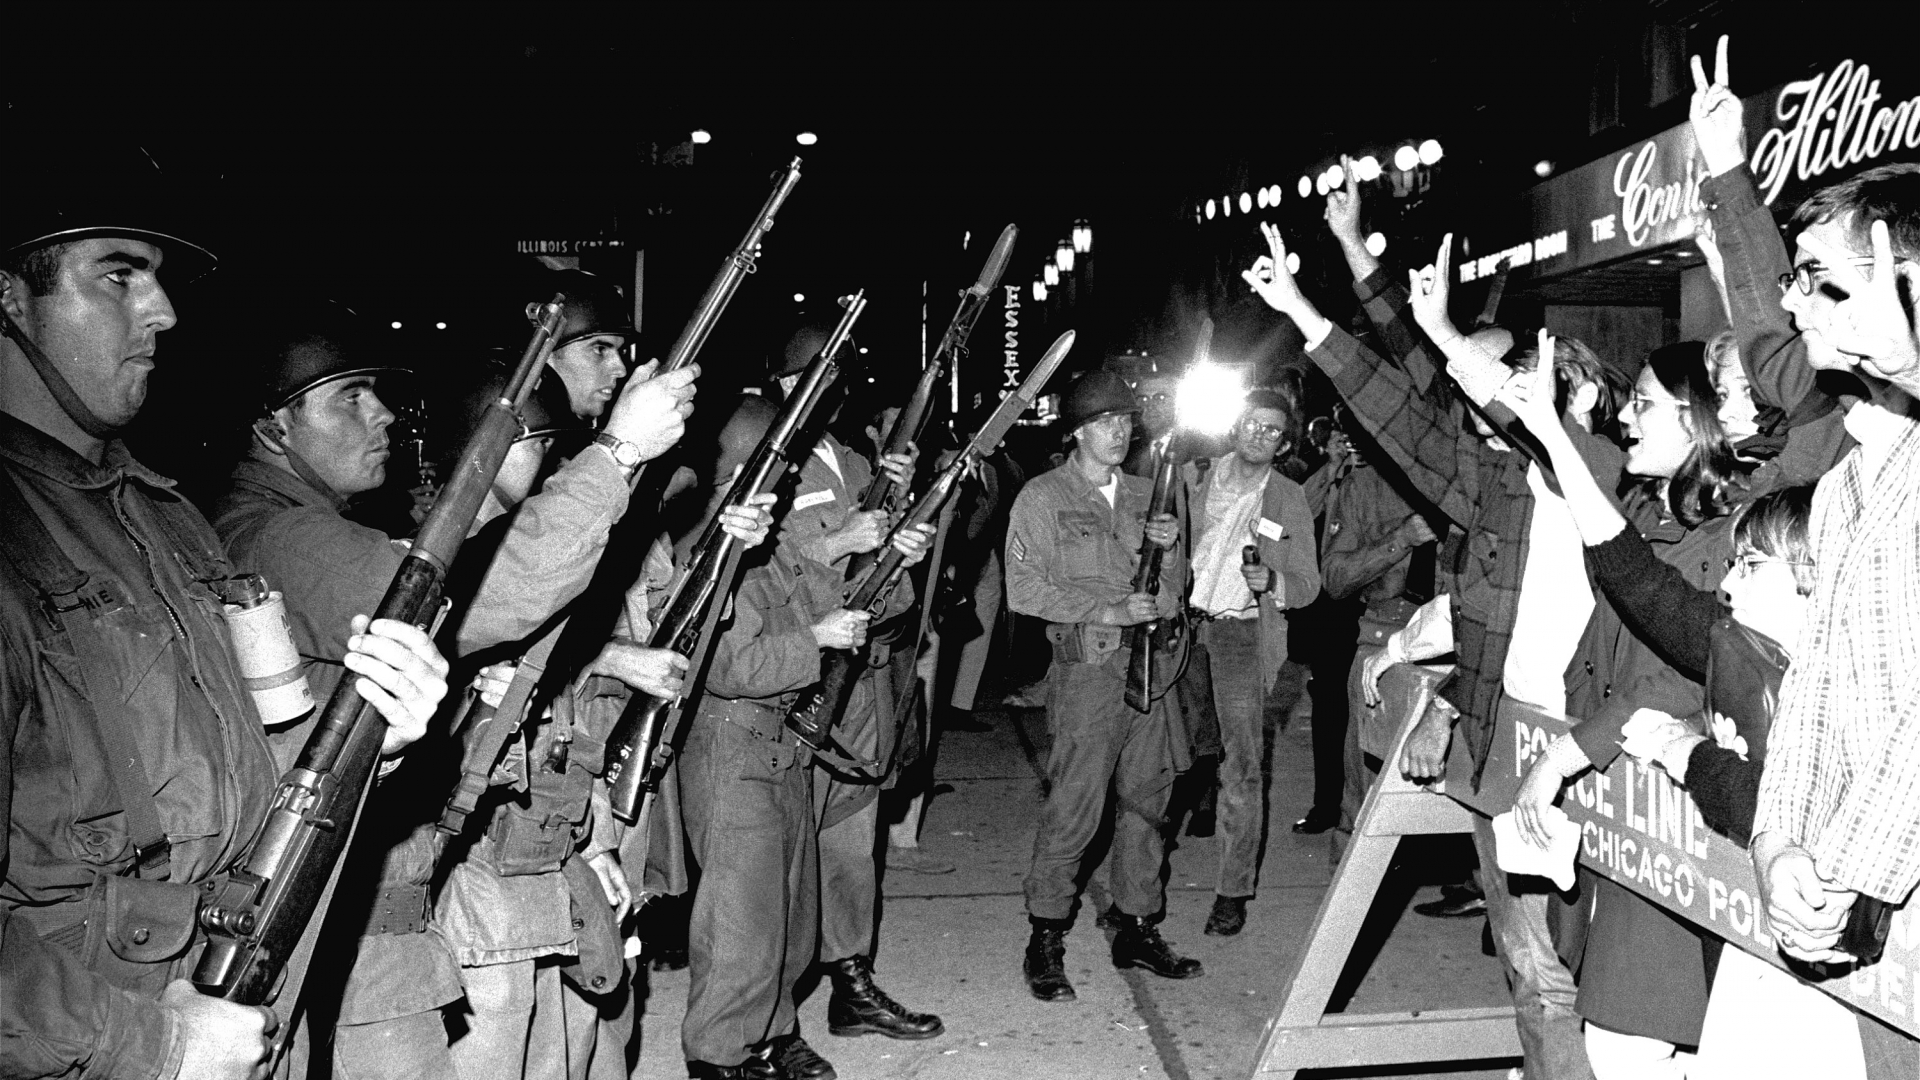 Peace demonstrators taunt Illinois National Guardsmen outside the Democratic National Convention headquarters hotel, on August 29, 1968. (Credit: AP Photo)